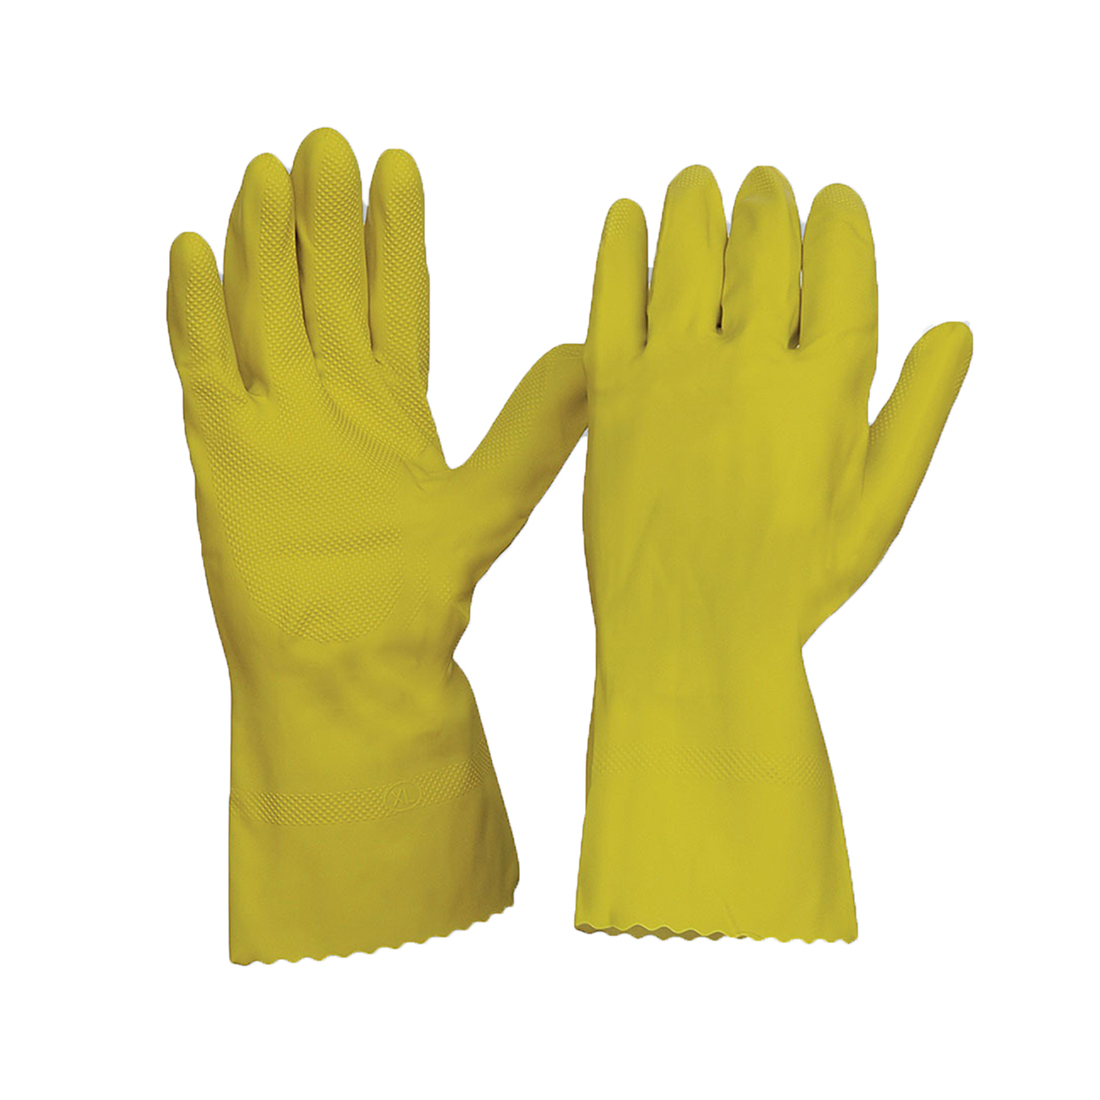 Silverlined Chemical Resistant Gloves Yellow